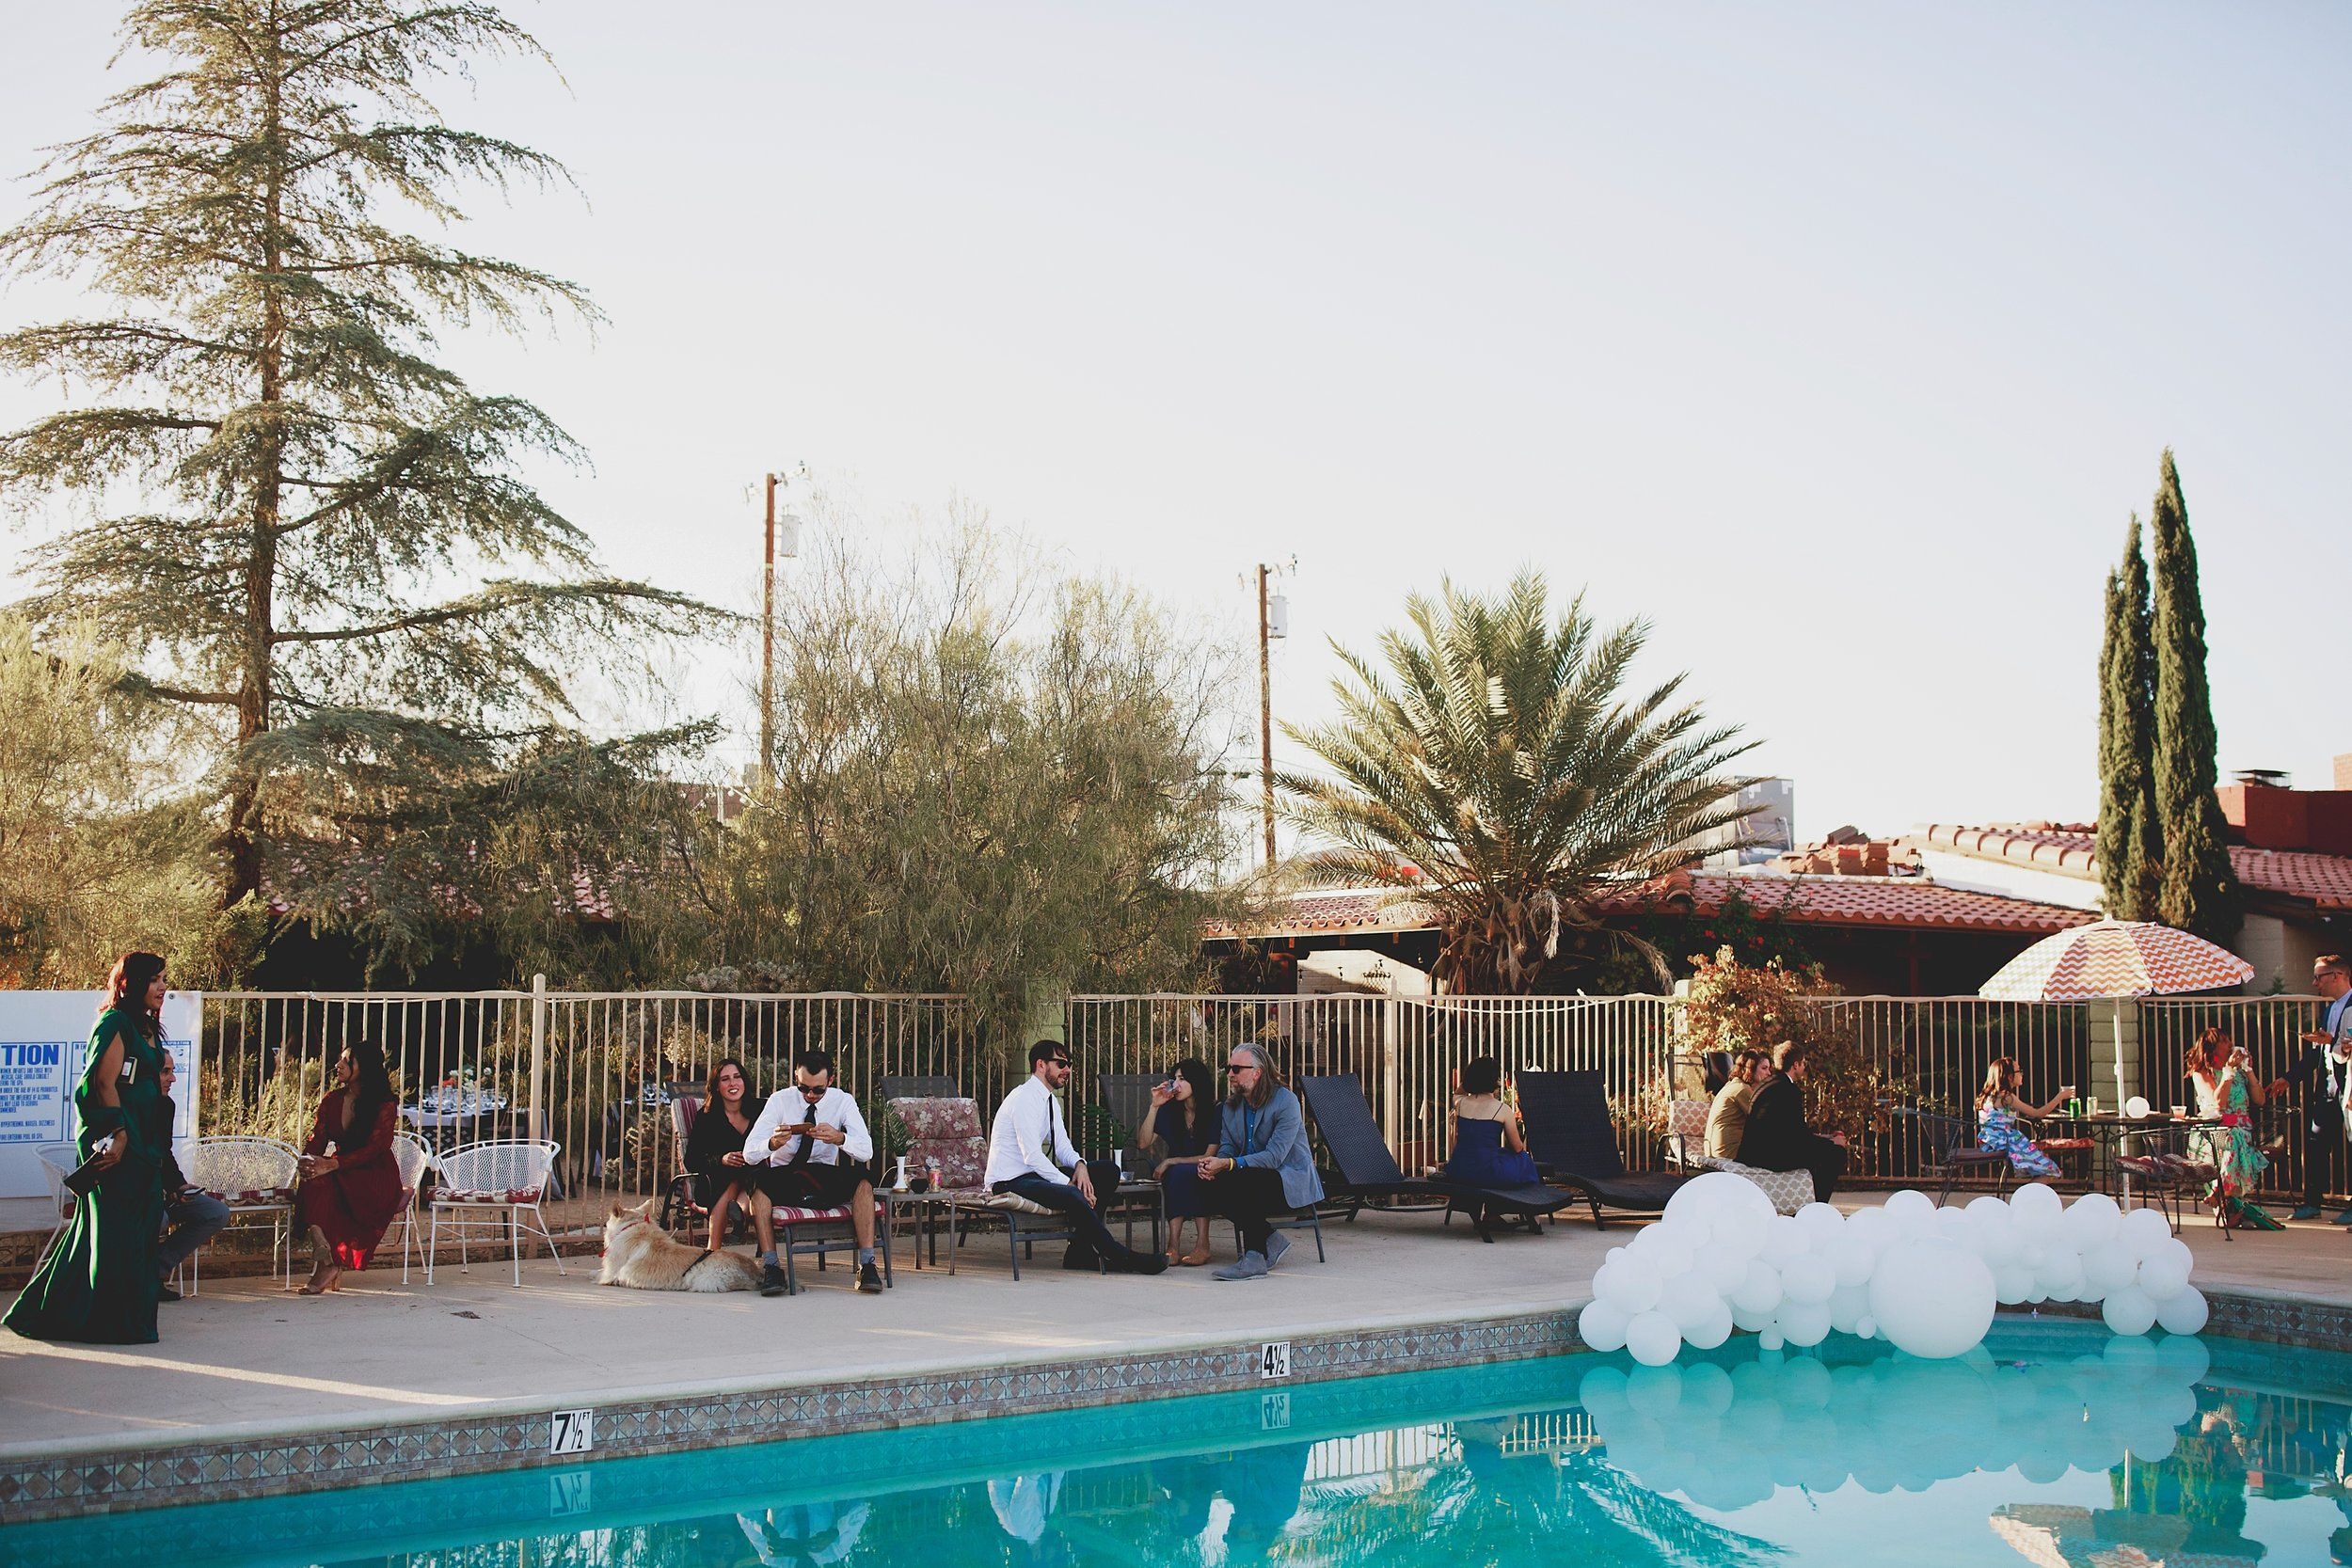 amanda_vanvels_joshua_tree_inn_wedding_112.jpg